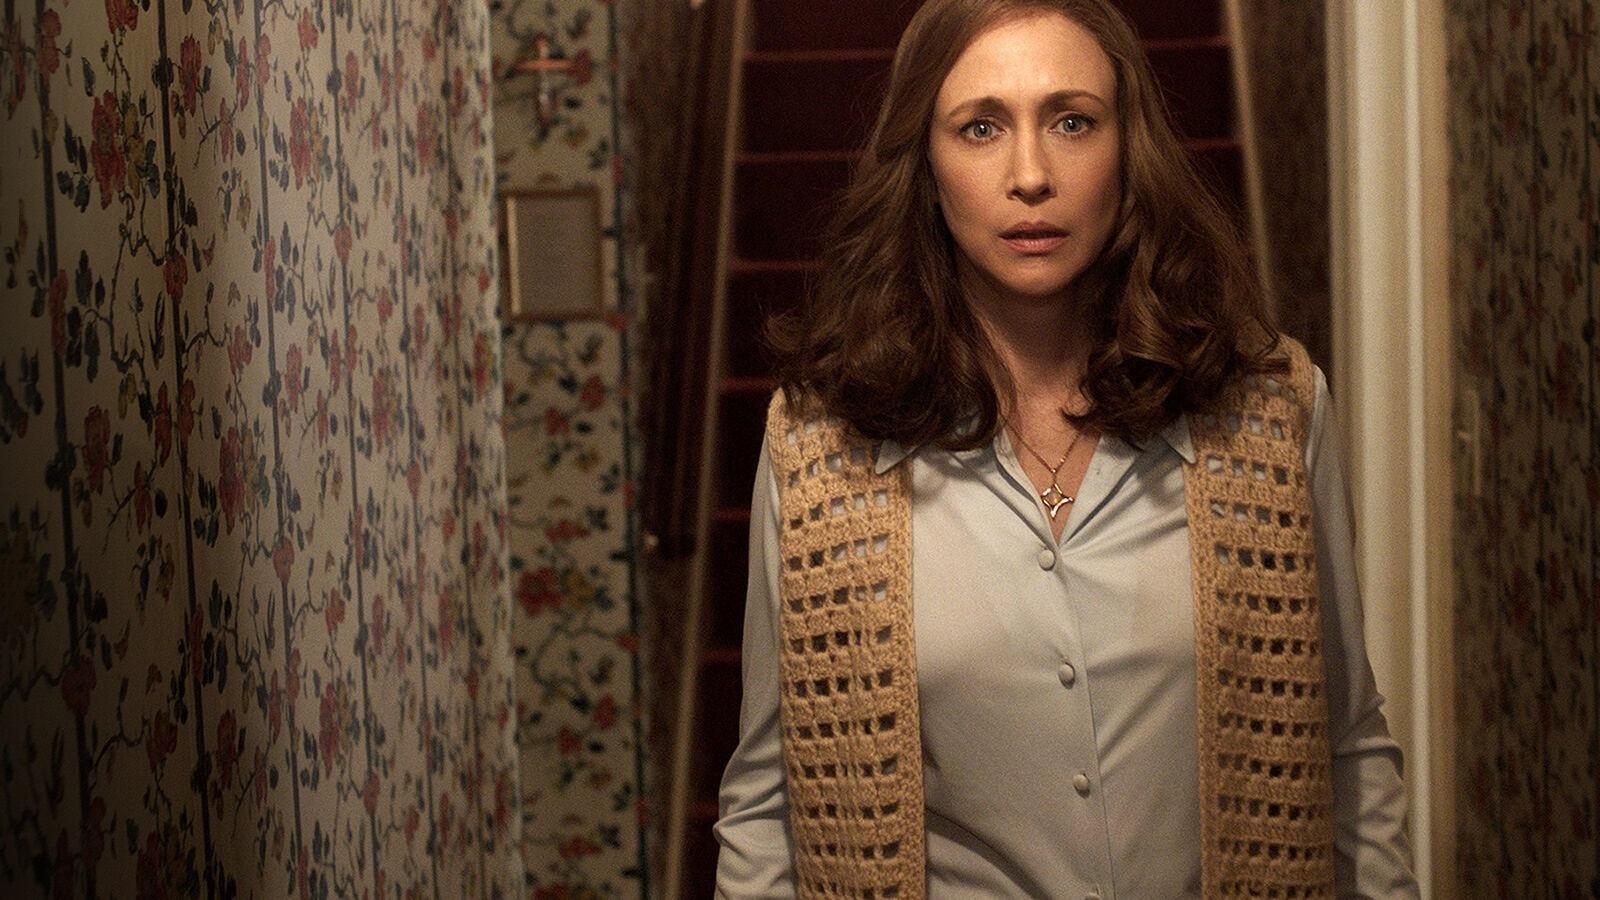 Premium Cinema 1 The conjuring - Il caso Enfield